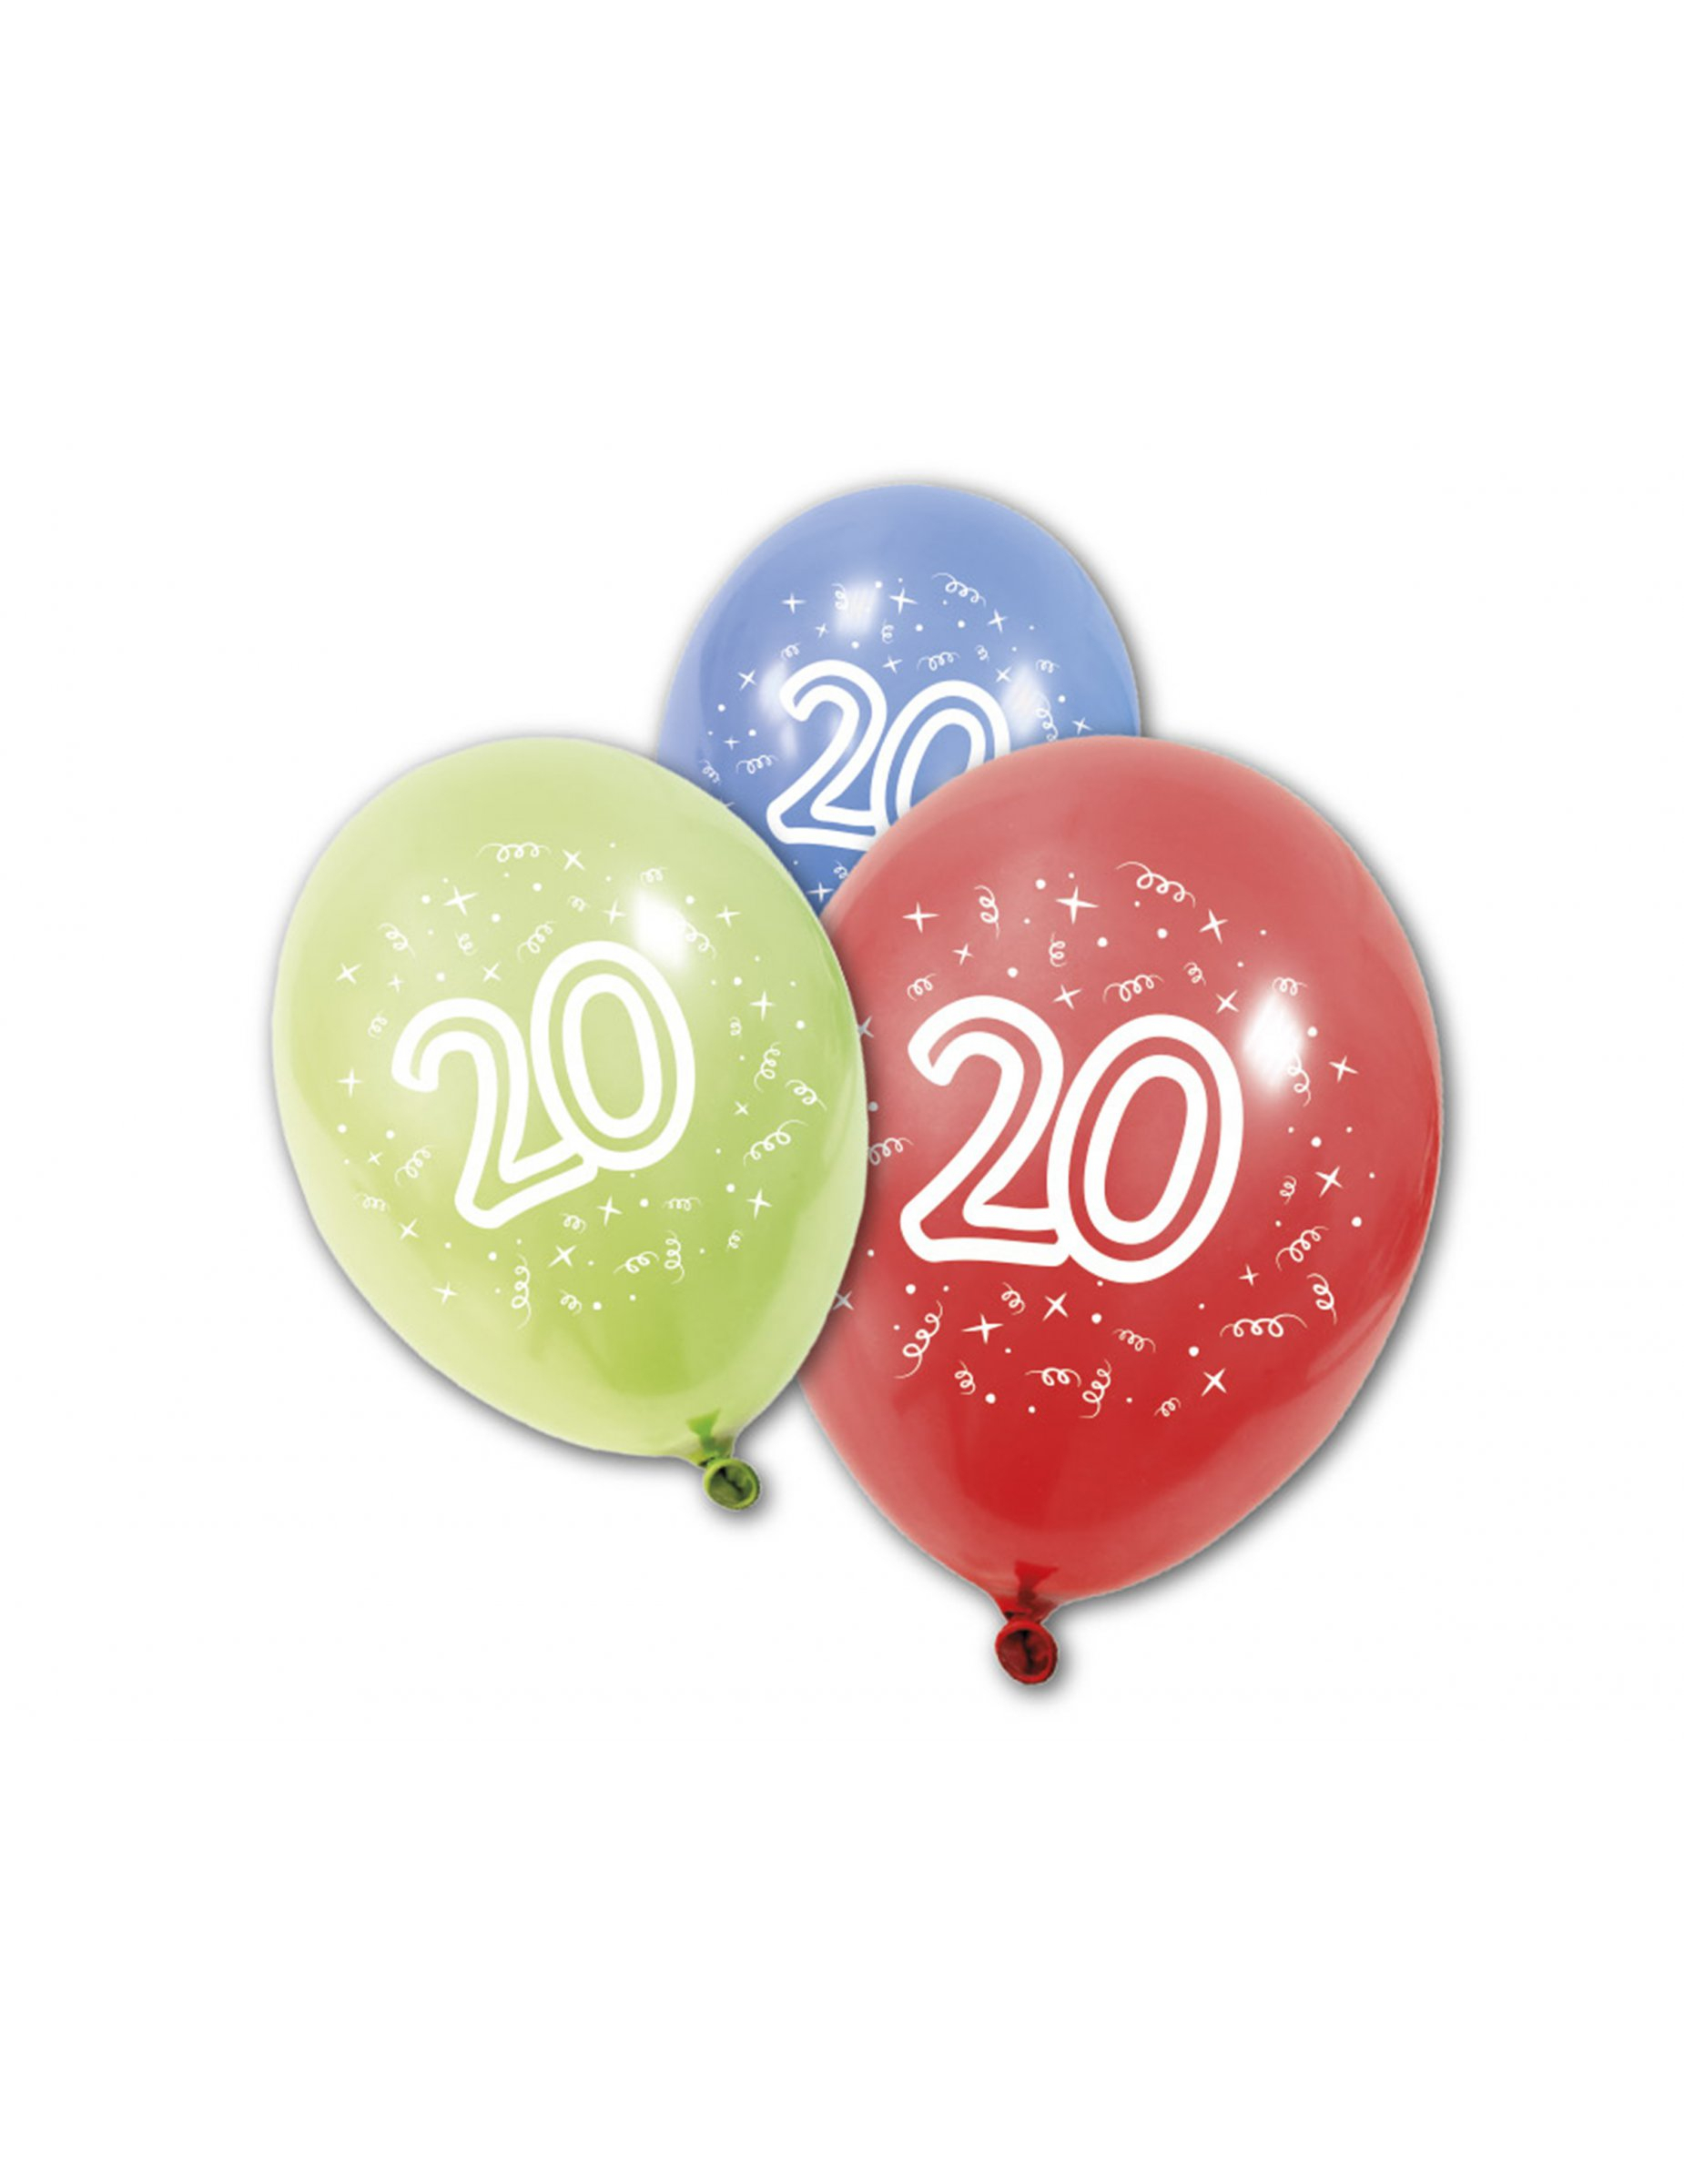 8 ballons anniversaire 20 ans deguise toi achat de decoration animation. Black Bedroom Furniture Sets. Home Design Ideas